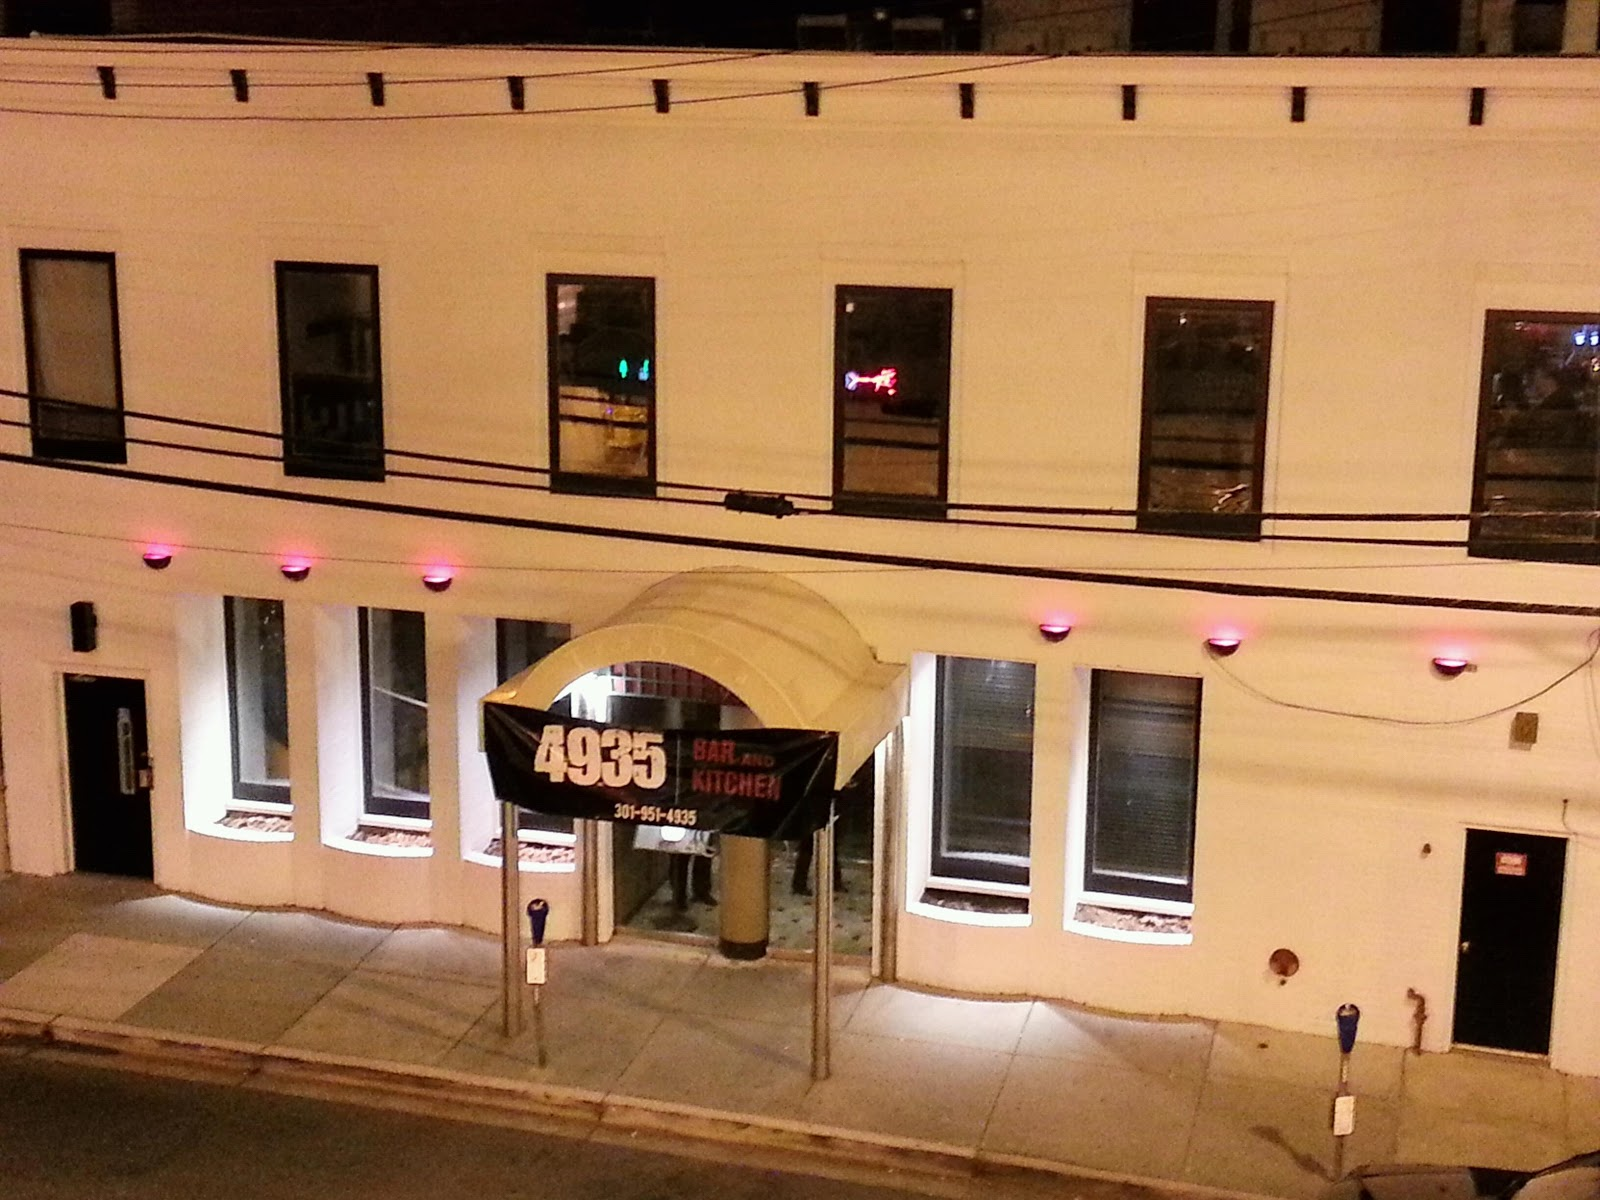 Robert Dyer @ Bethesda Row: 4935 BAR AND KITCHEN EXPANDS HOURS